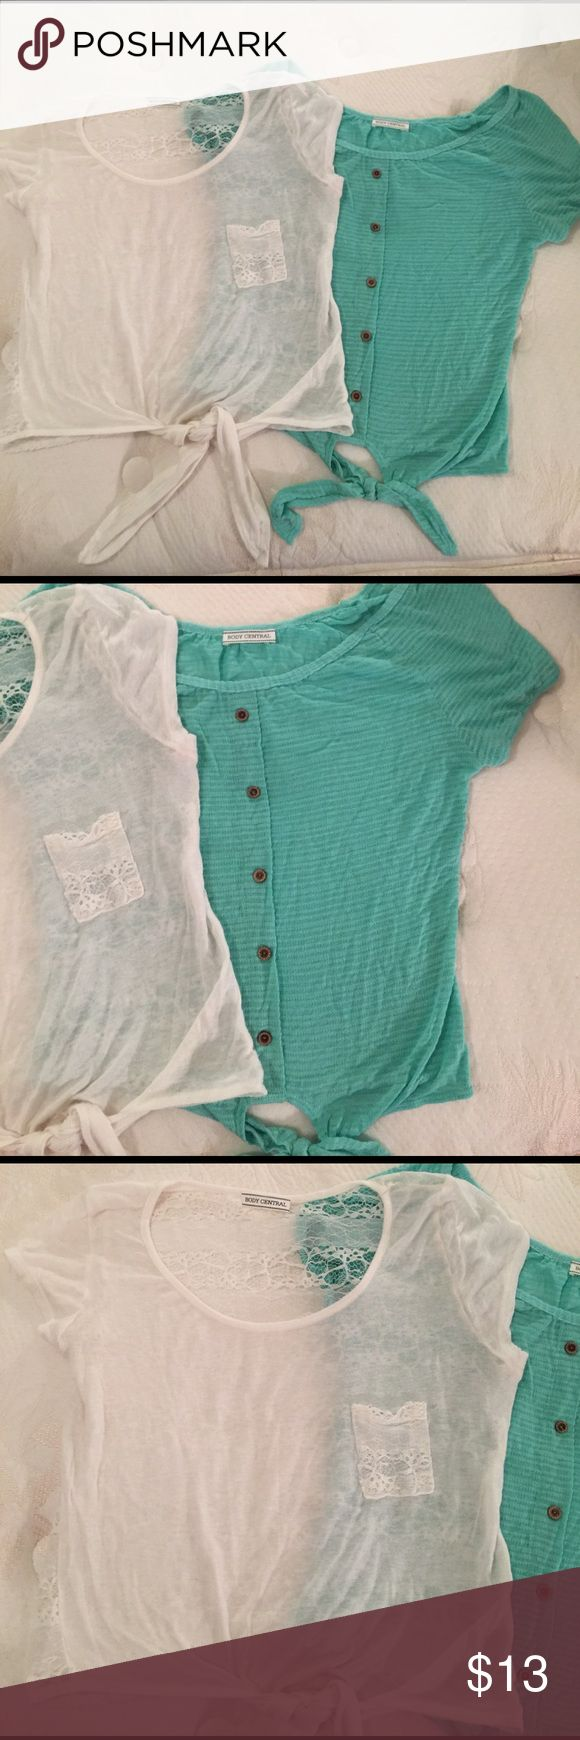 Body Central 2 tie crop tops teal/ white lace sz:M Body Central 2 tie crop tops teal/ white lace sz:M. The white one has a full lace back the blue one has light striping and brown buttons. Very cute for spring! Make an offer ❤ Body Central Tops Crop Tops